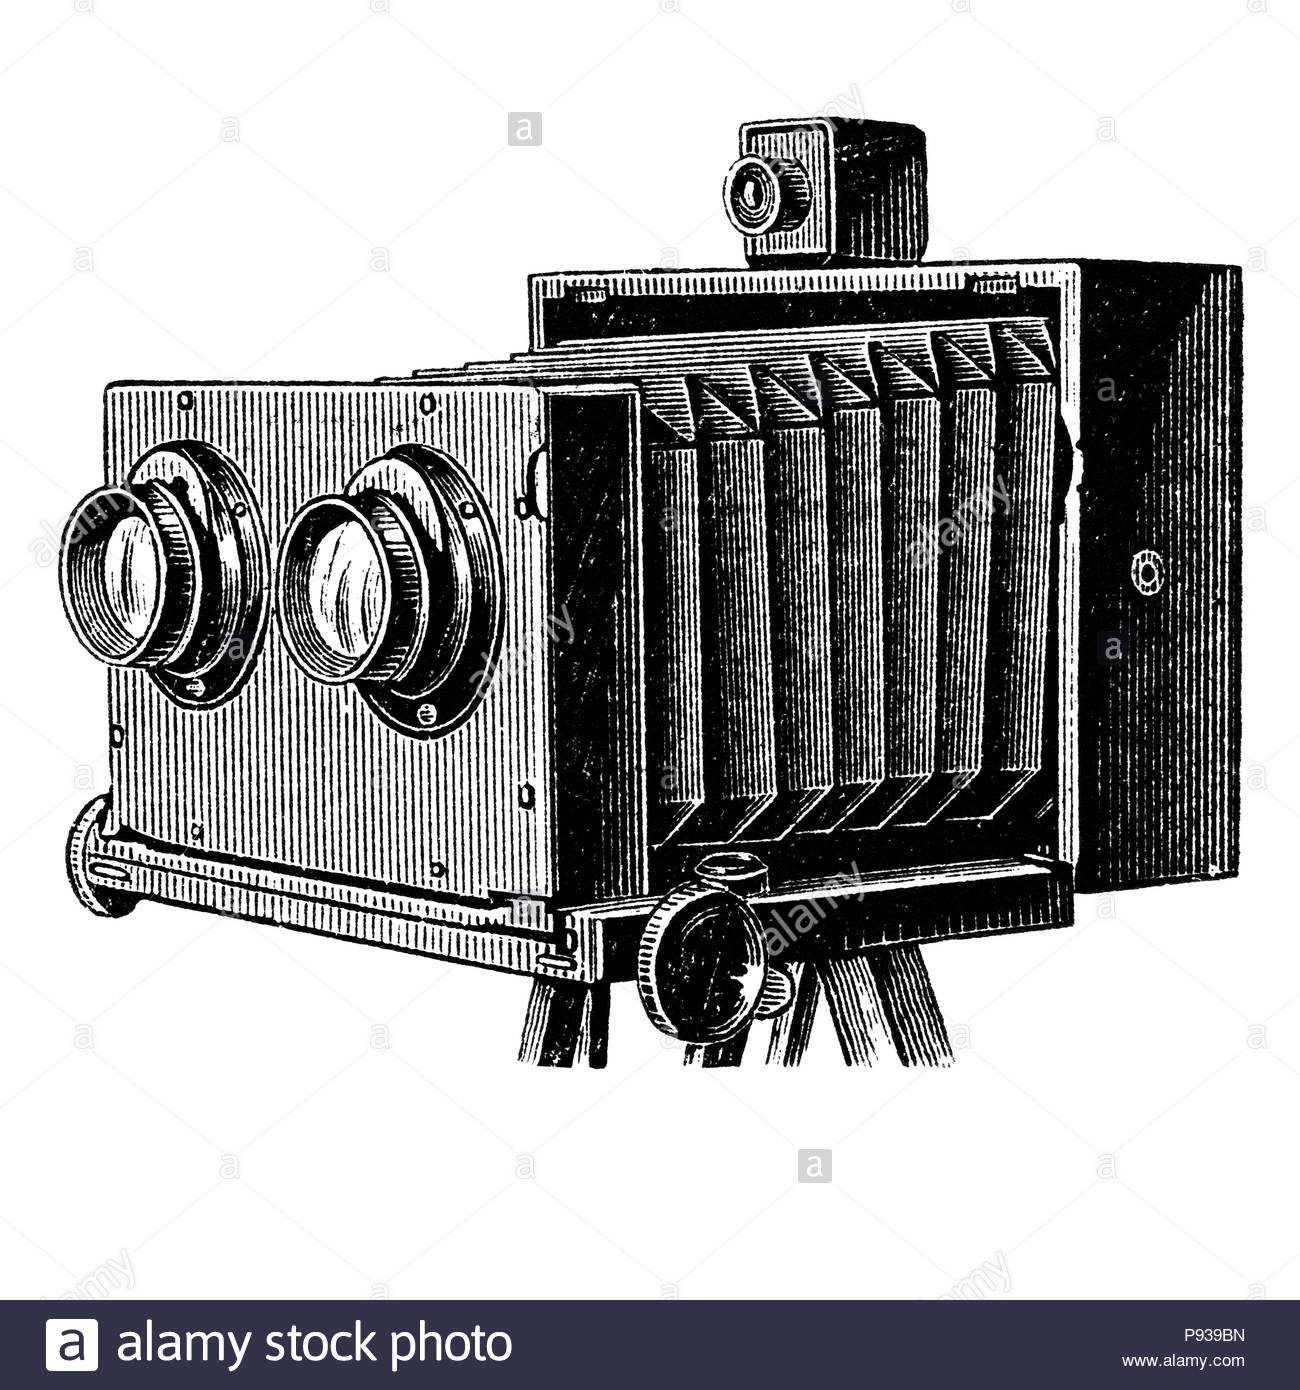 Wooden stereoscopic camera also known as stereo camera. Photographic camera illustration published in Brockhaus Konversations Lexicon 14 edition - Stock Image